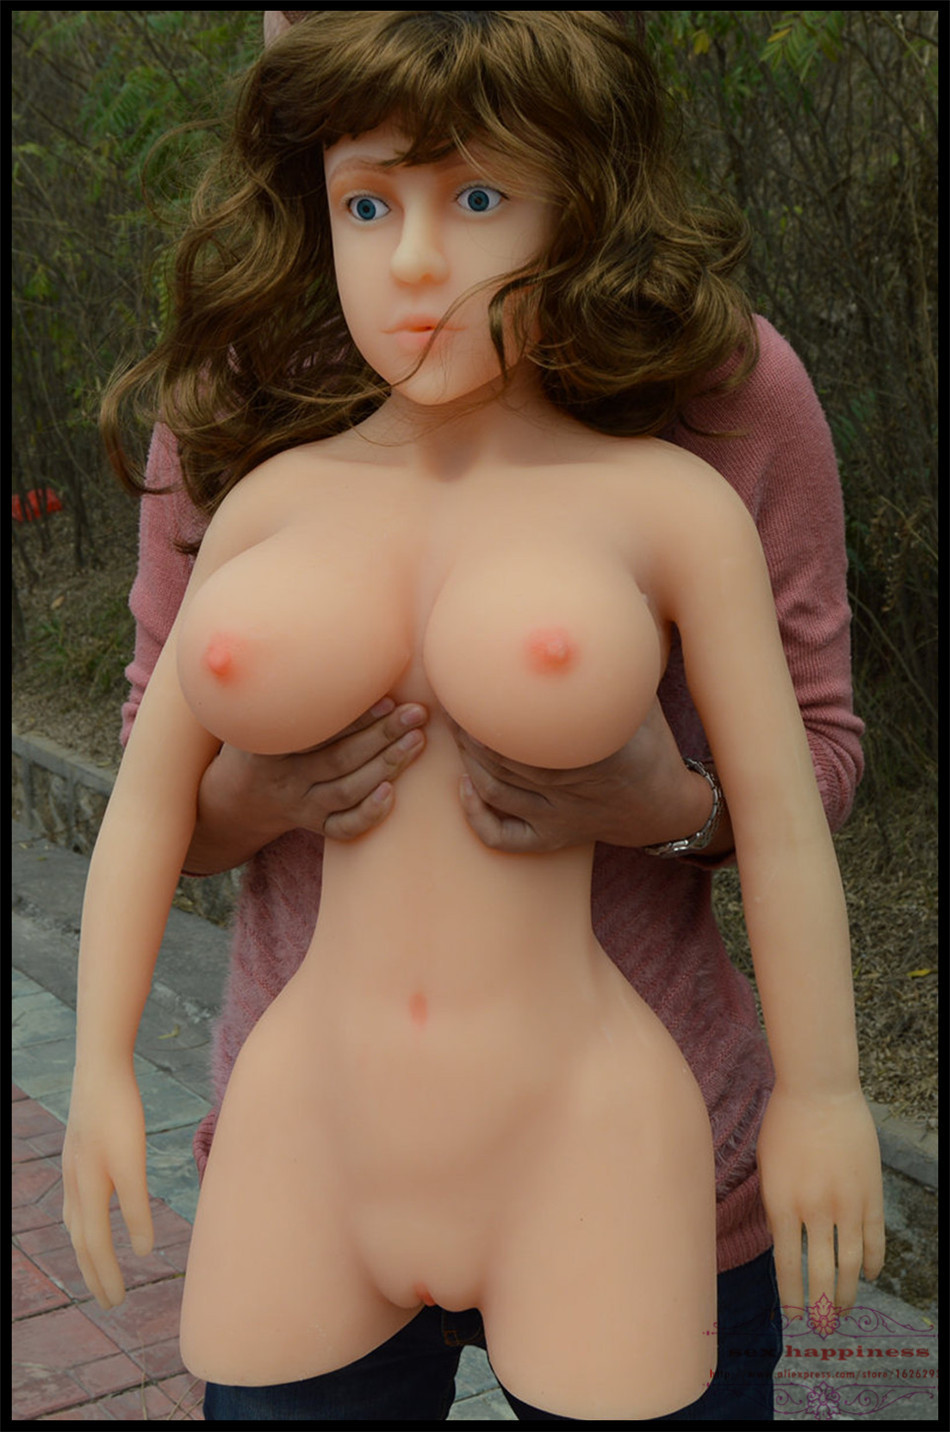 Will Doll shoved in pussy porn but not